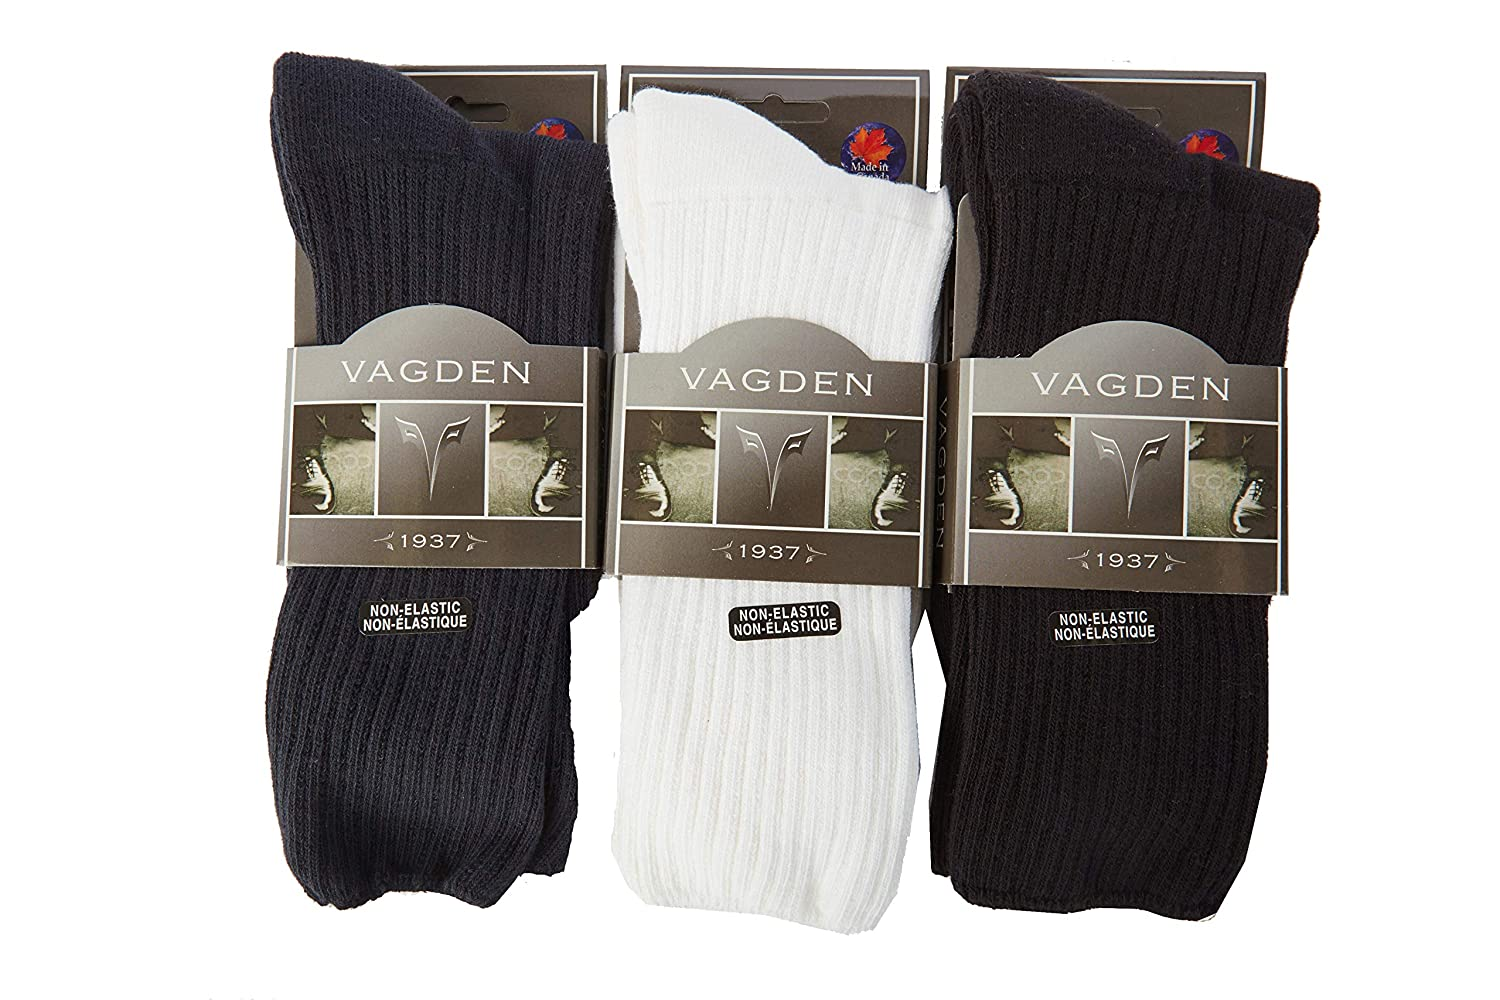 100% Cotton Cushion Sole Diabetic Socks (2 Pair) SoxShop